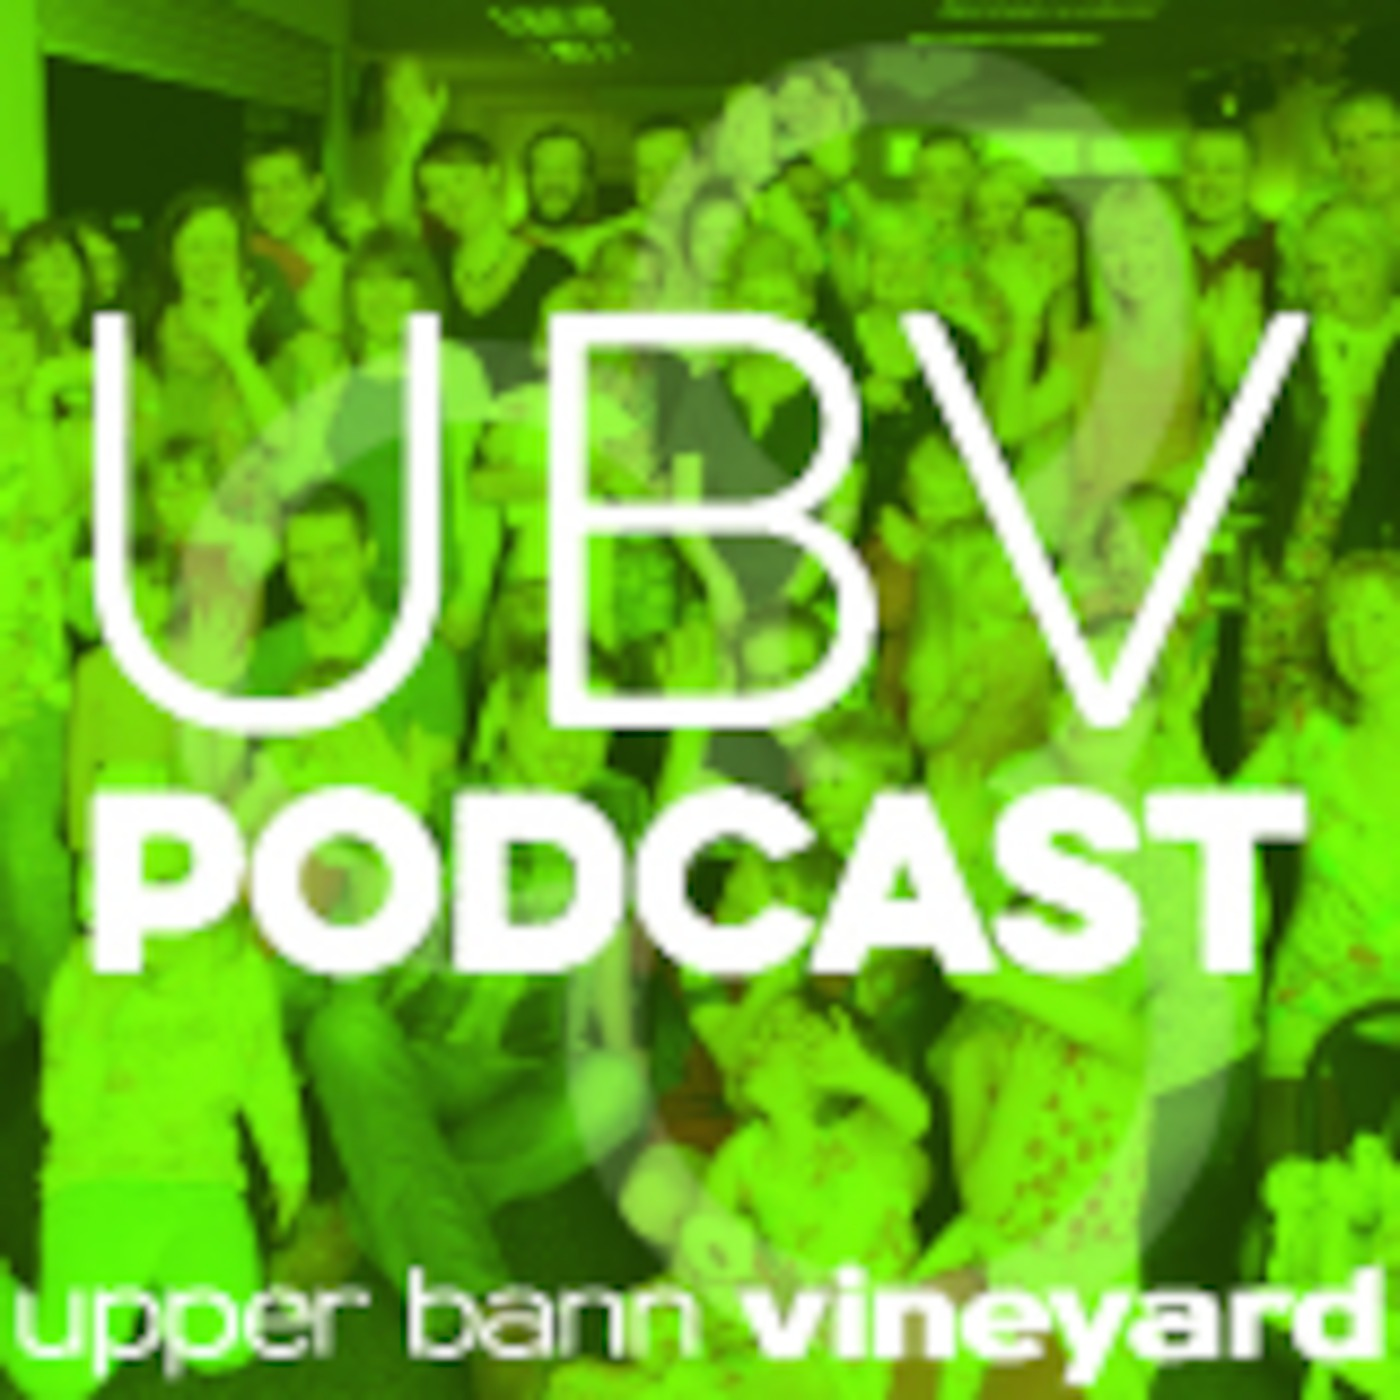 Upper Bann Vineyard's Podcast